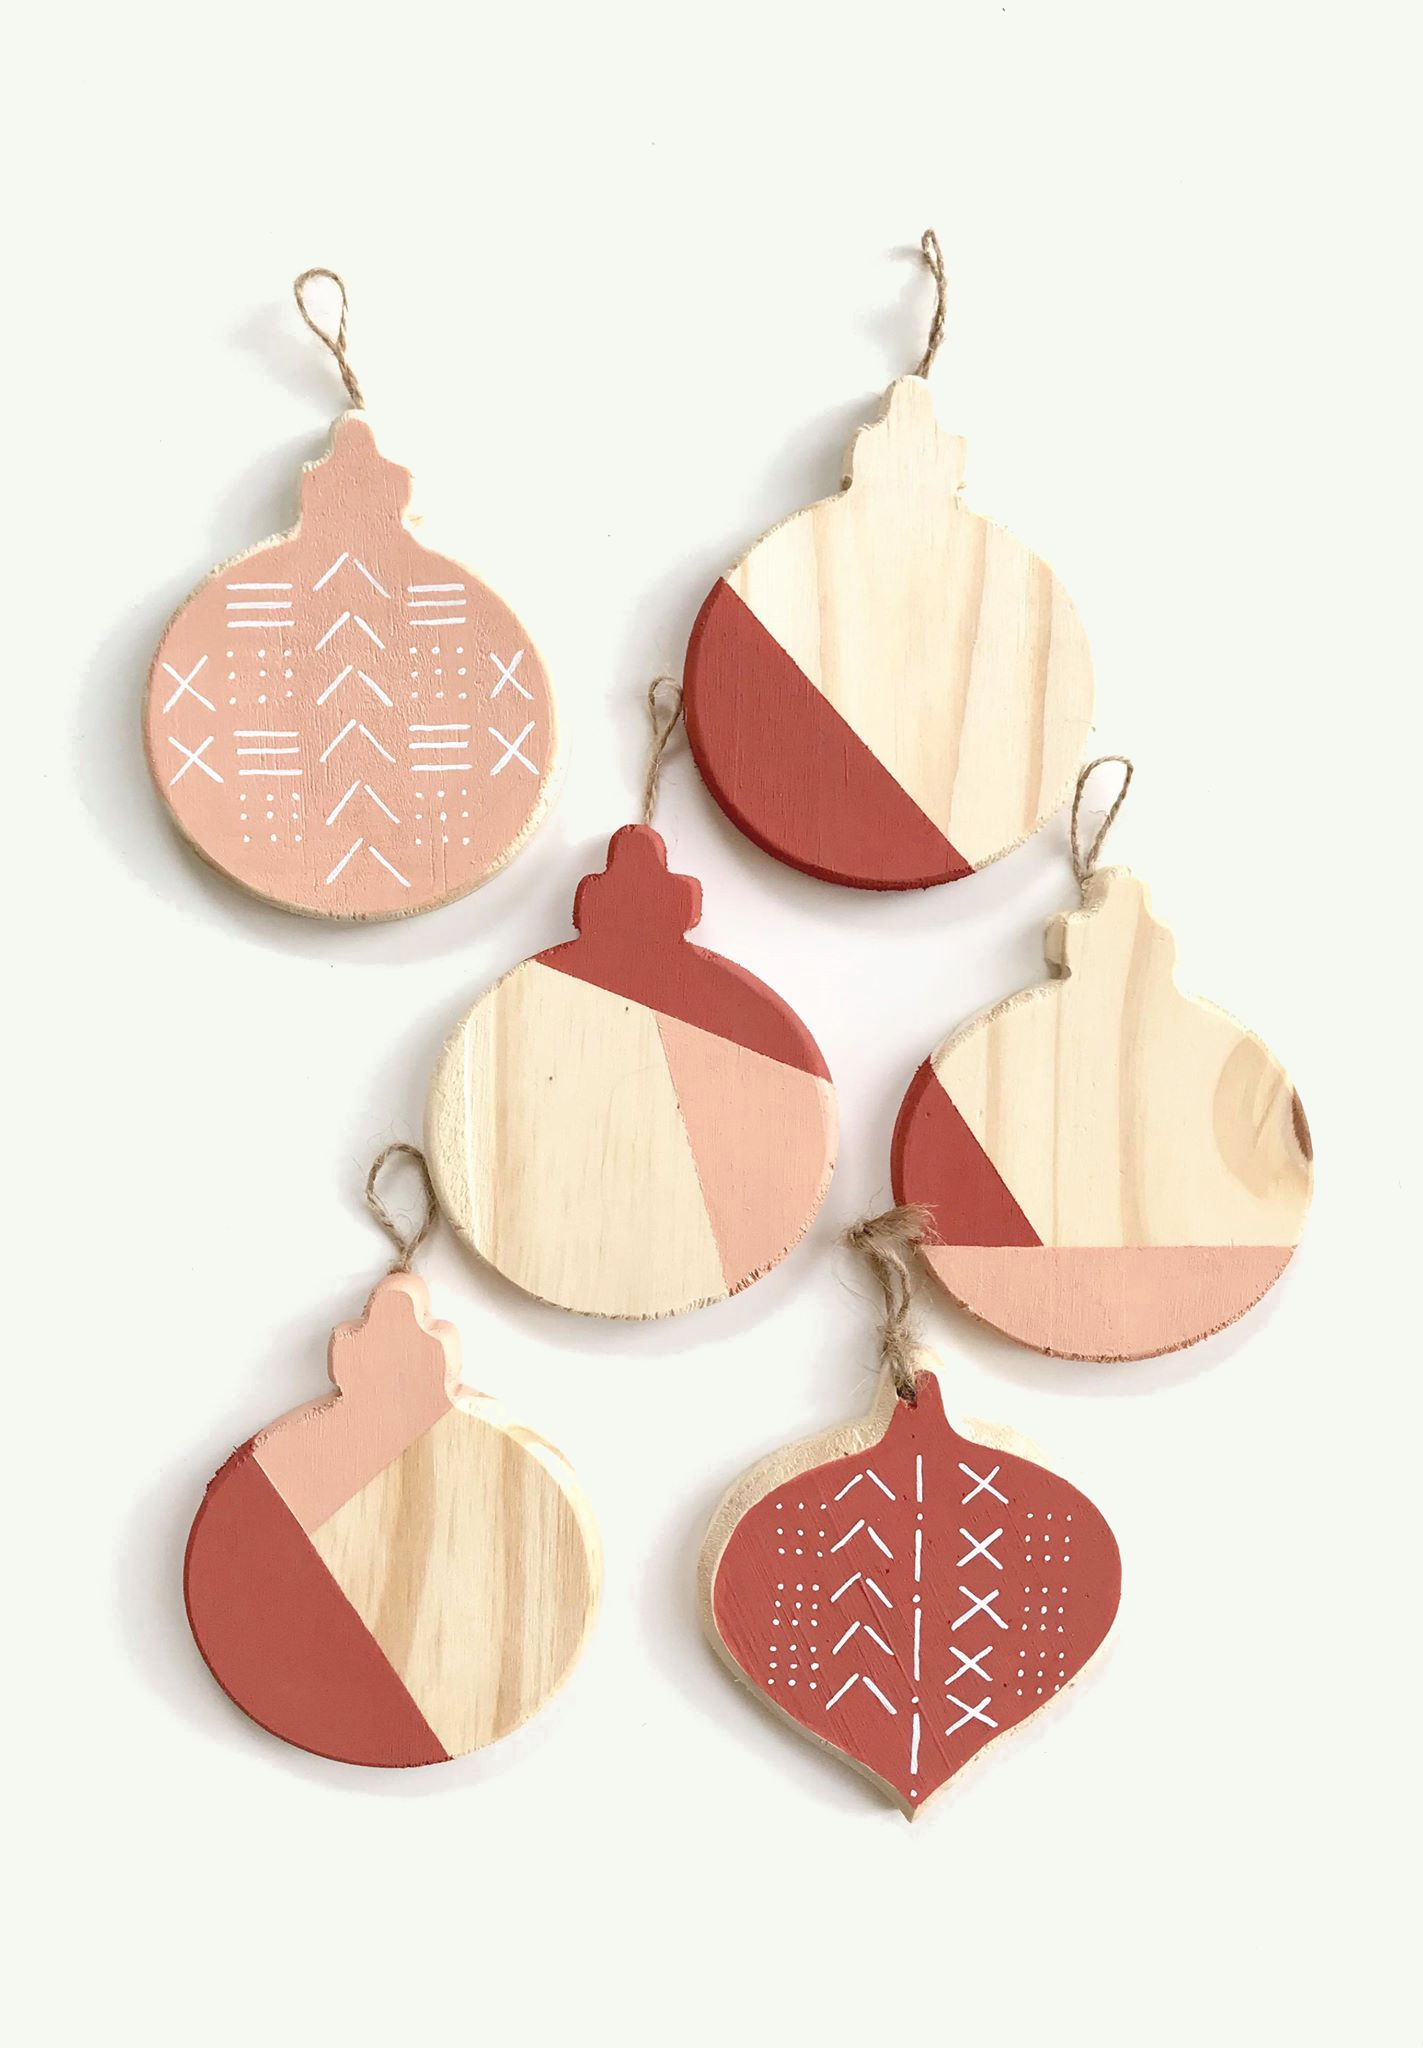 mudcloth and colour block ornaments in blush pink and cinnamon2